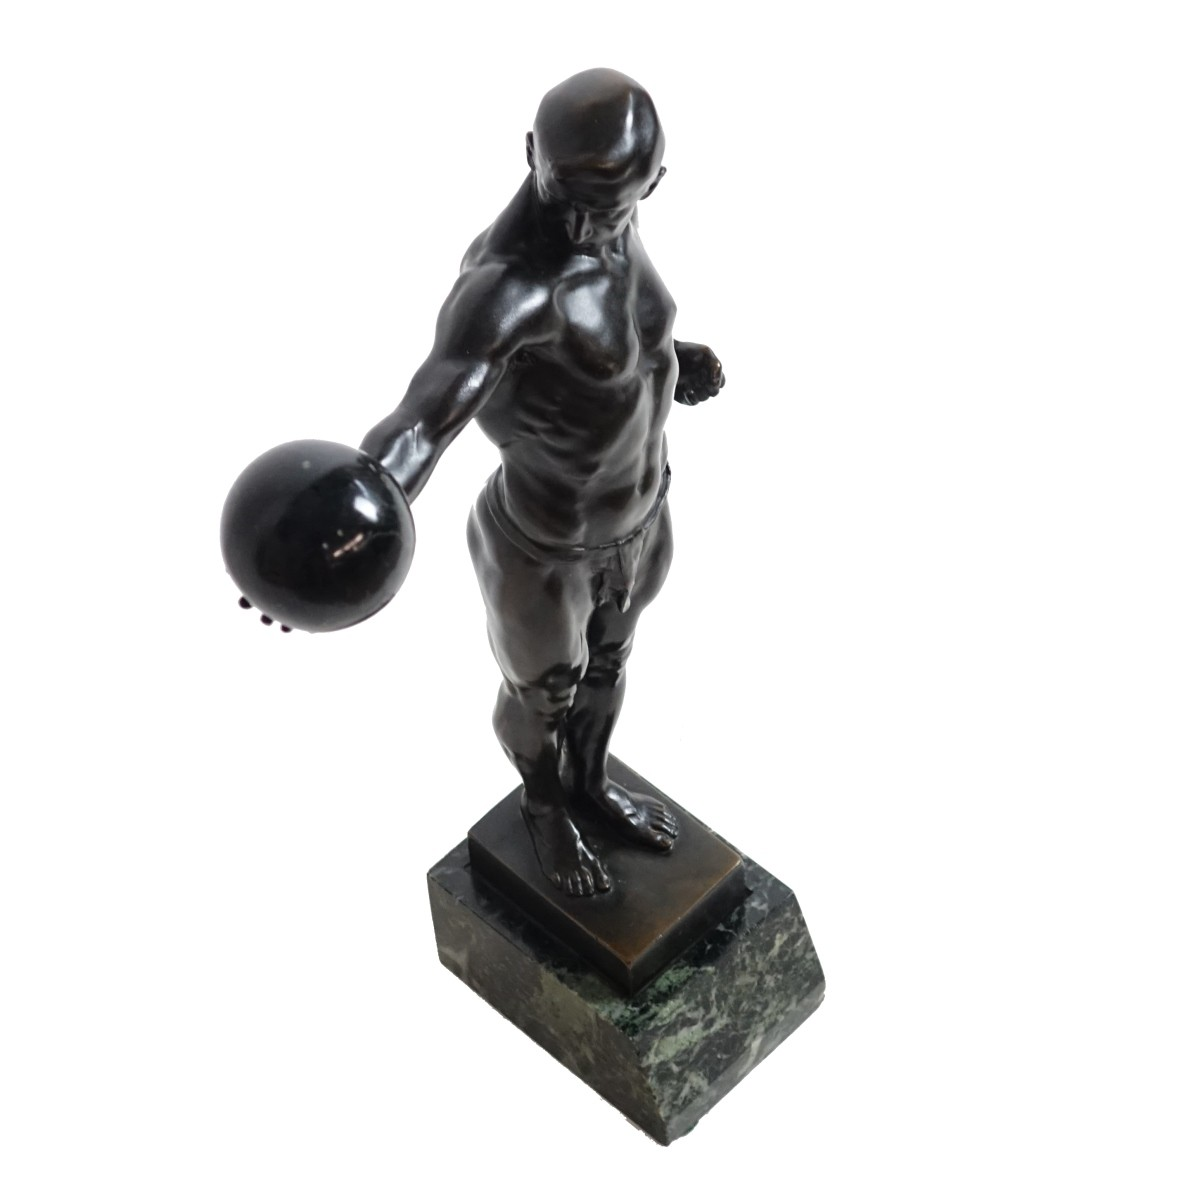 S. Bauer Bronze Sculpture on Marble Base